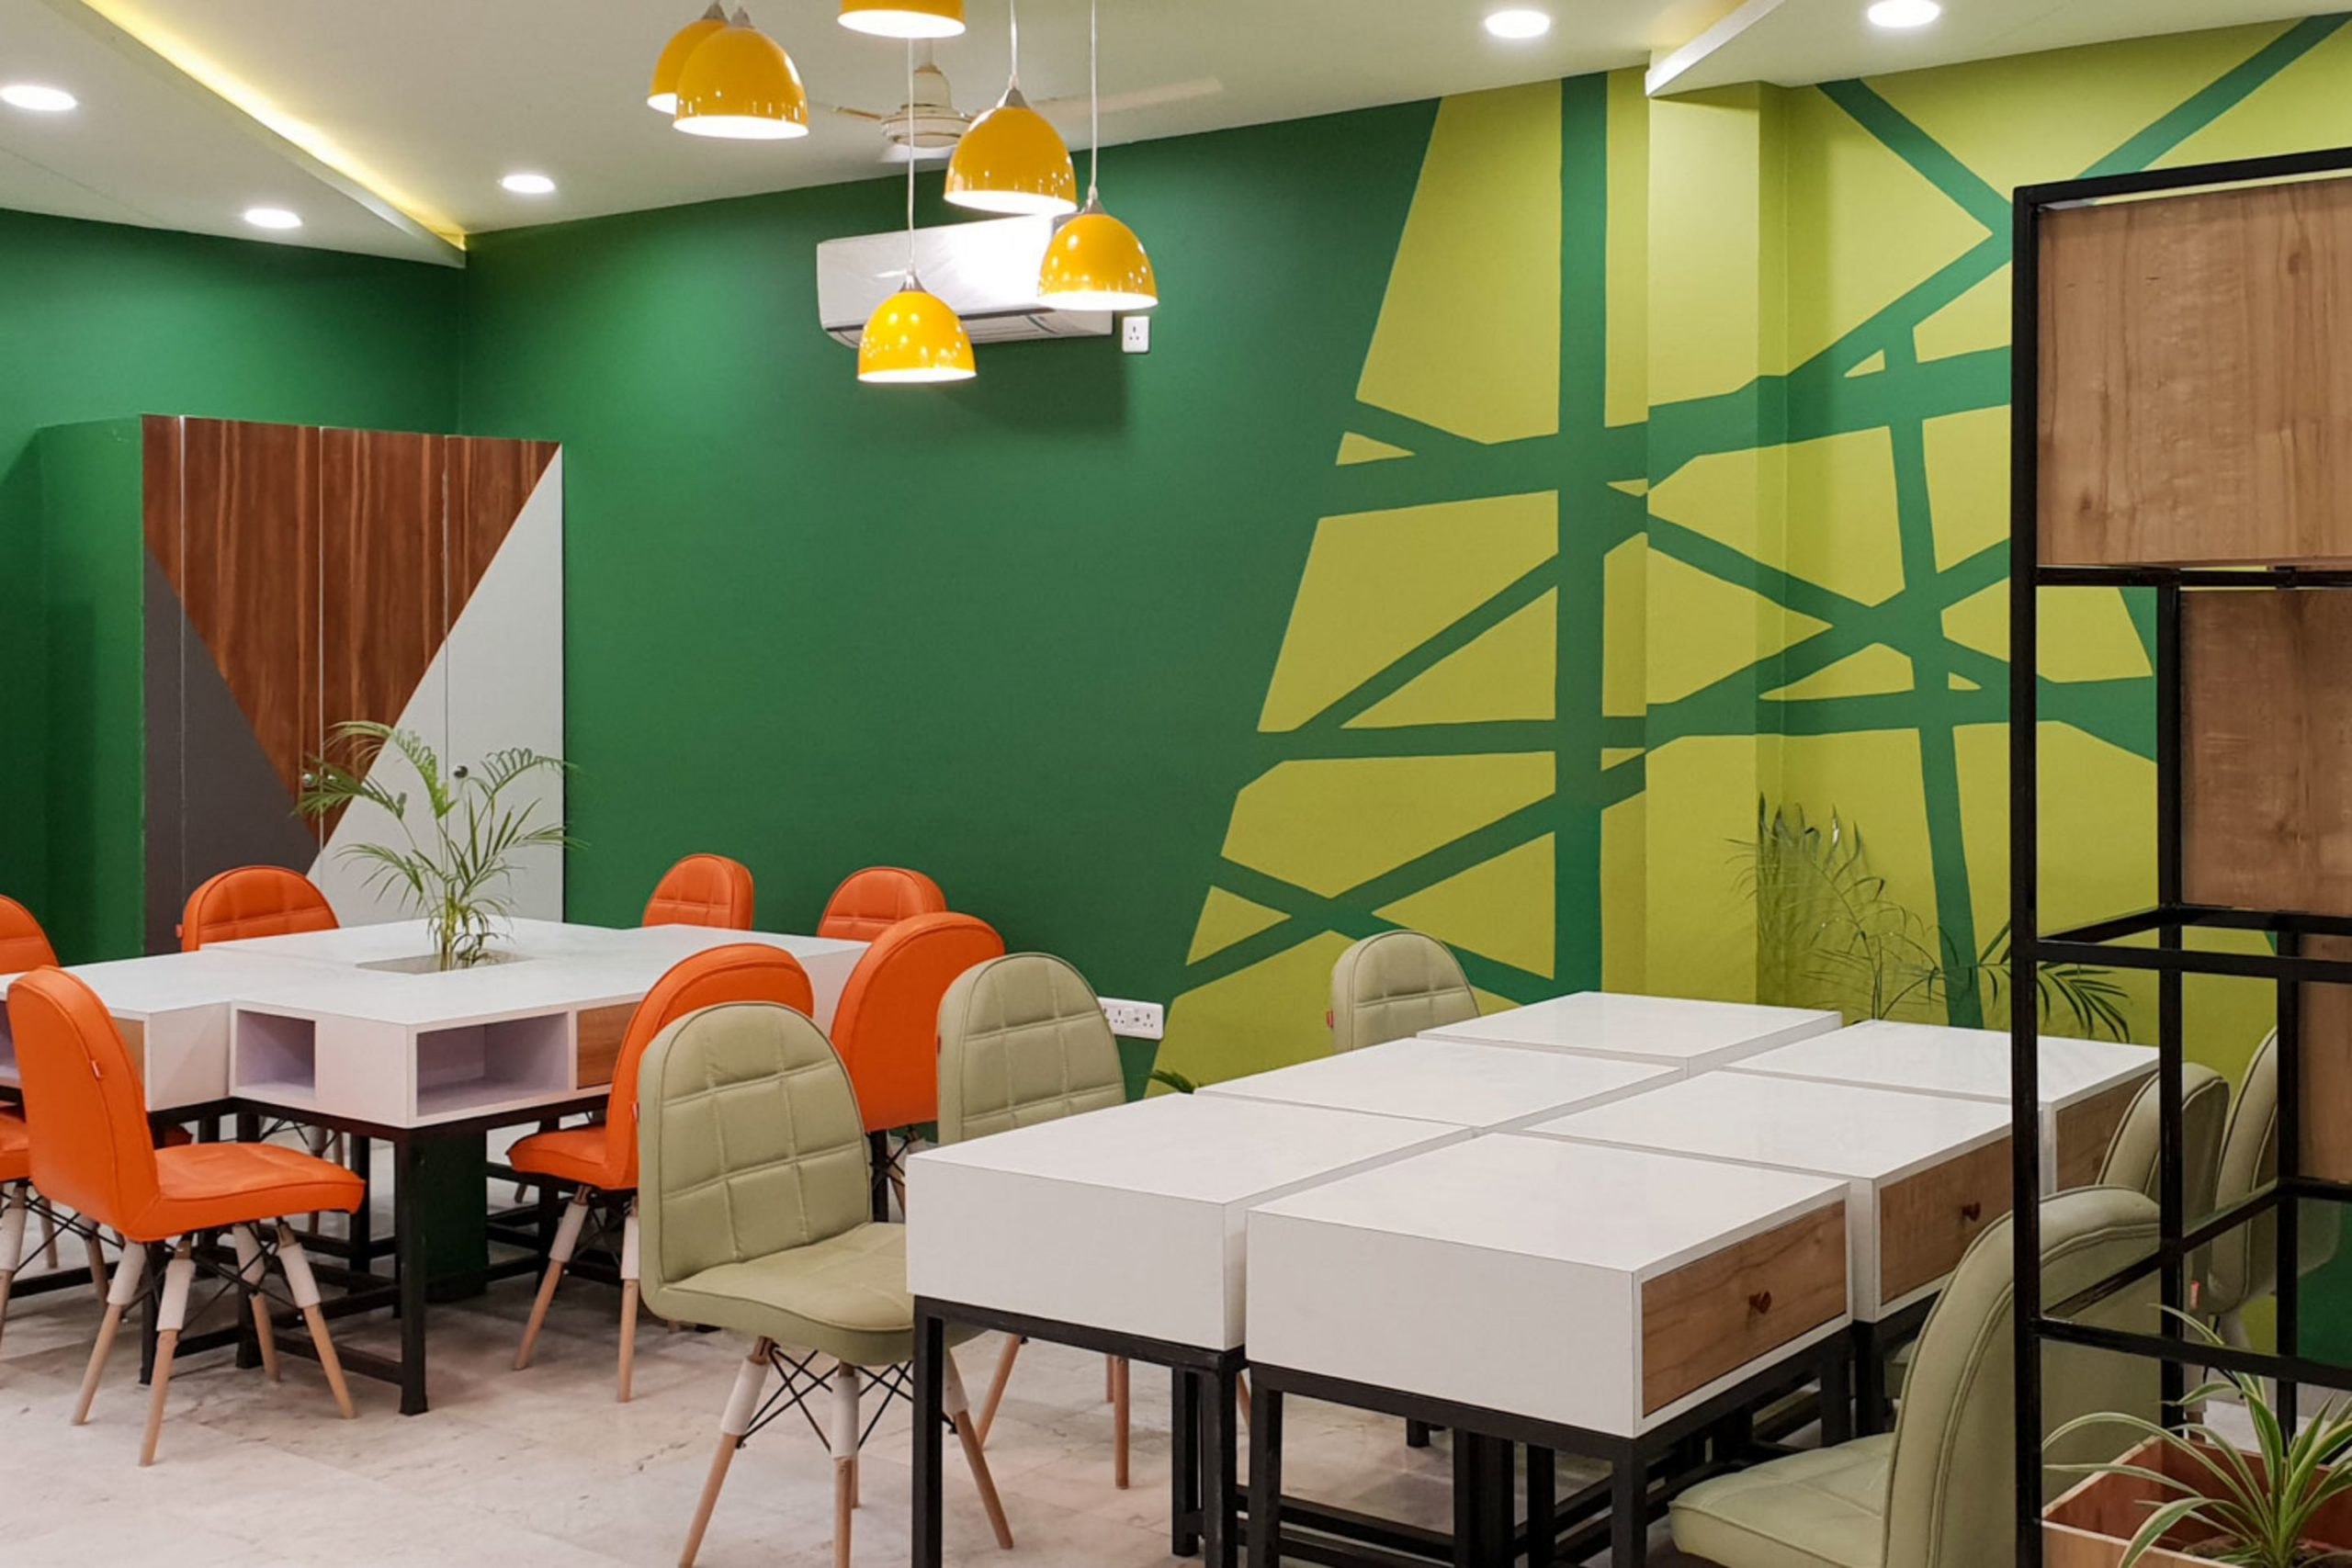 ECORK coworking space in Lucknow